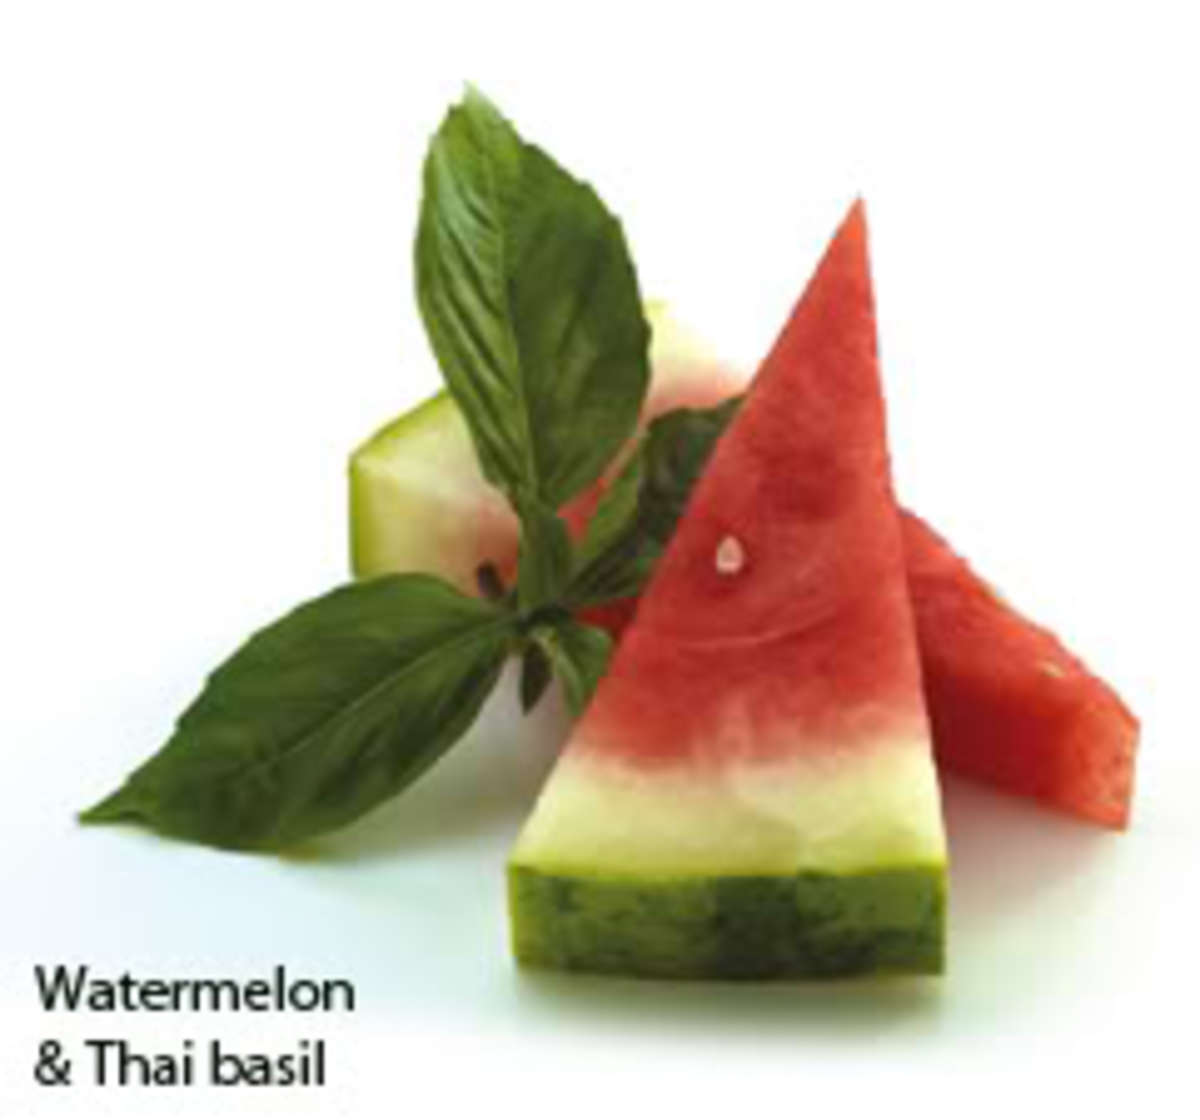 Pair Watermelon with Thai Basic